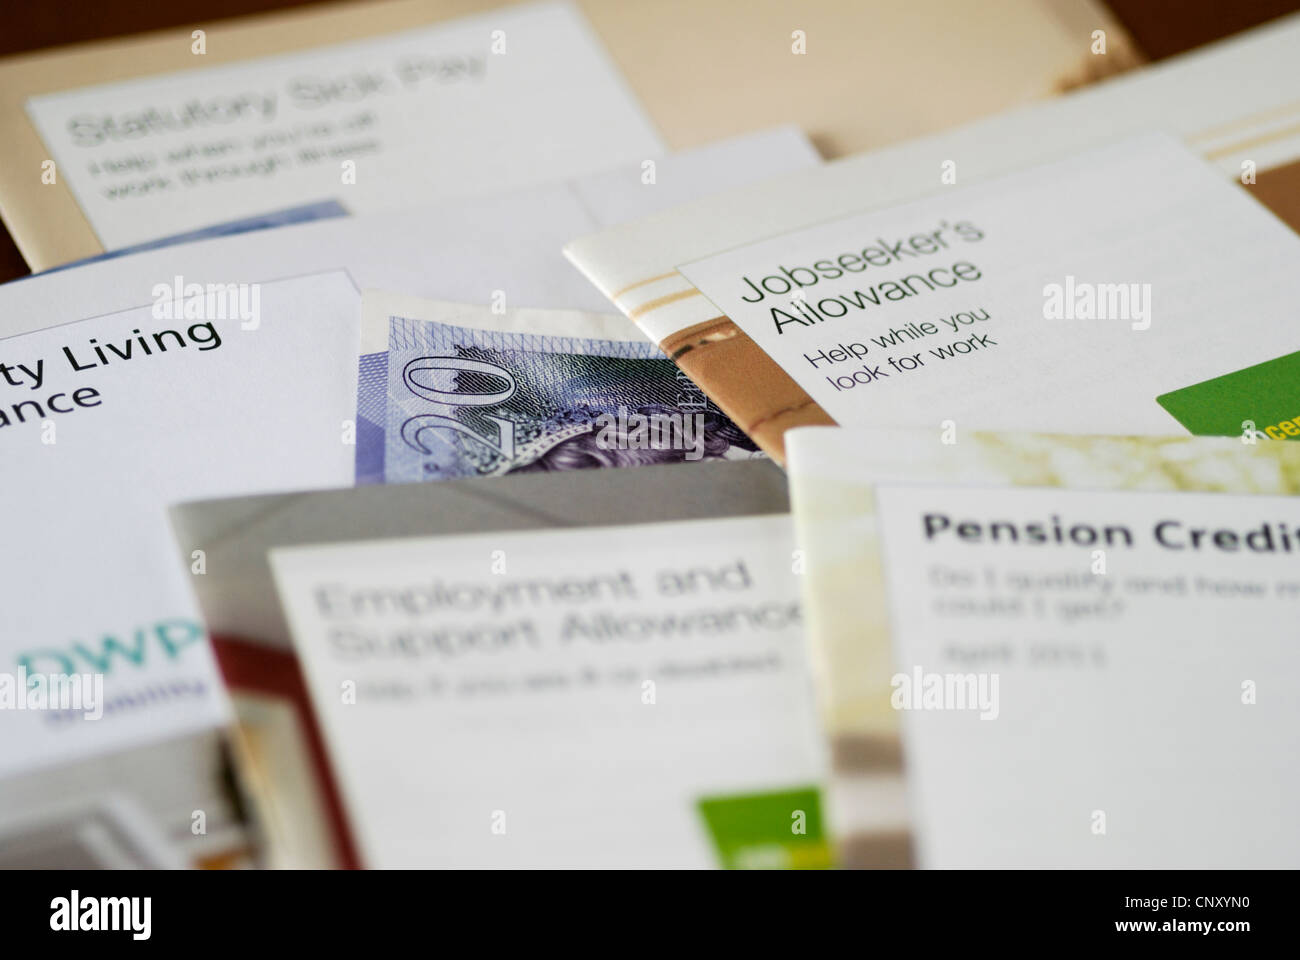 Leaflets about UK government benefits and allowances - Stock Image